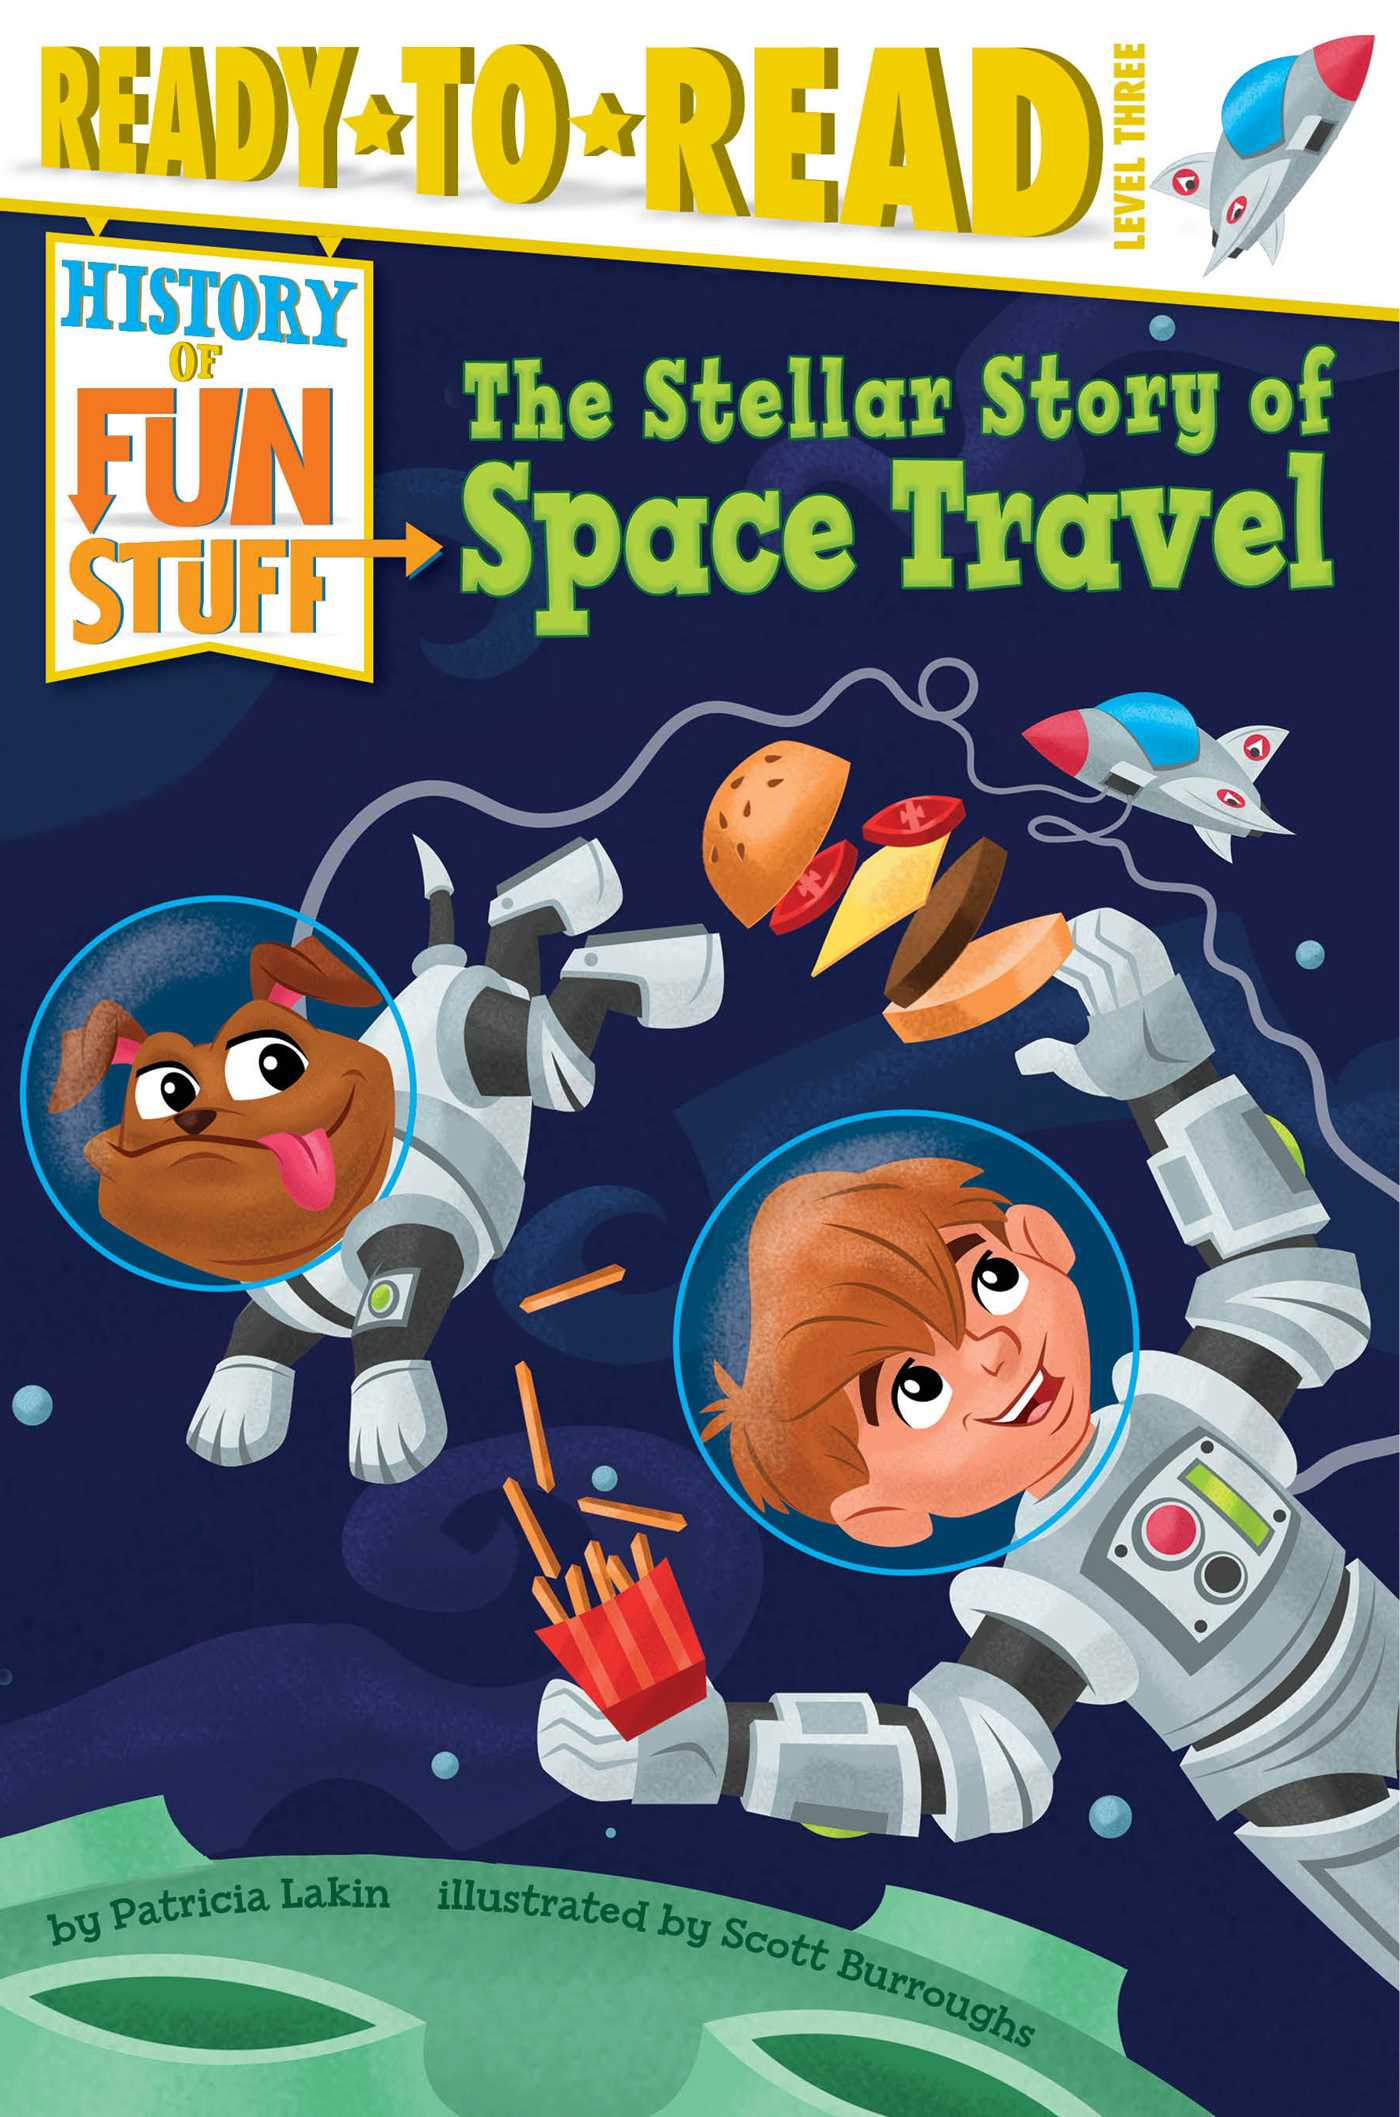 The stellar story of space travel 9781481456234 hr